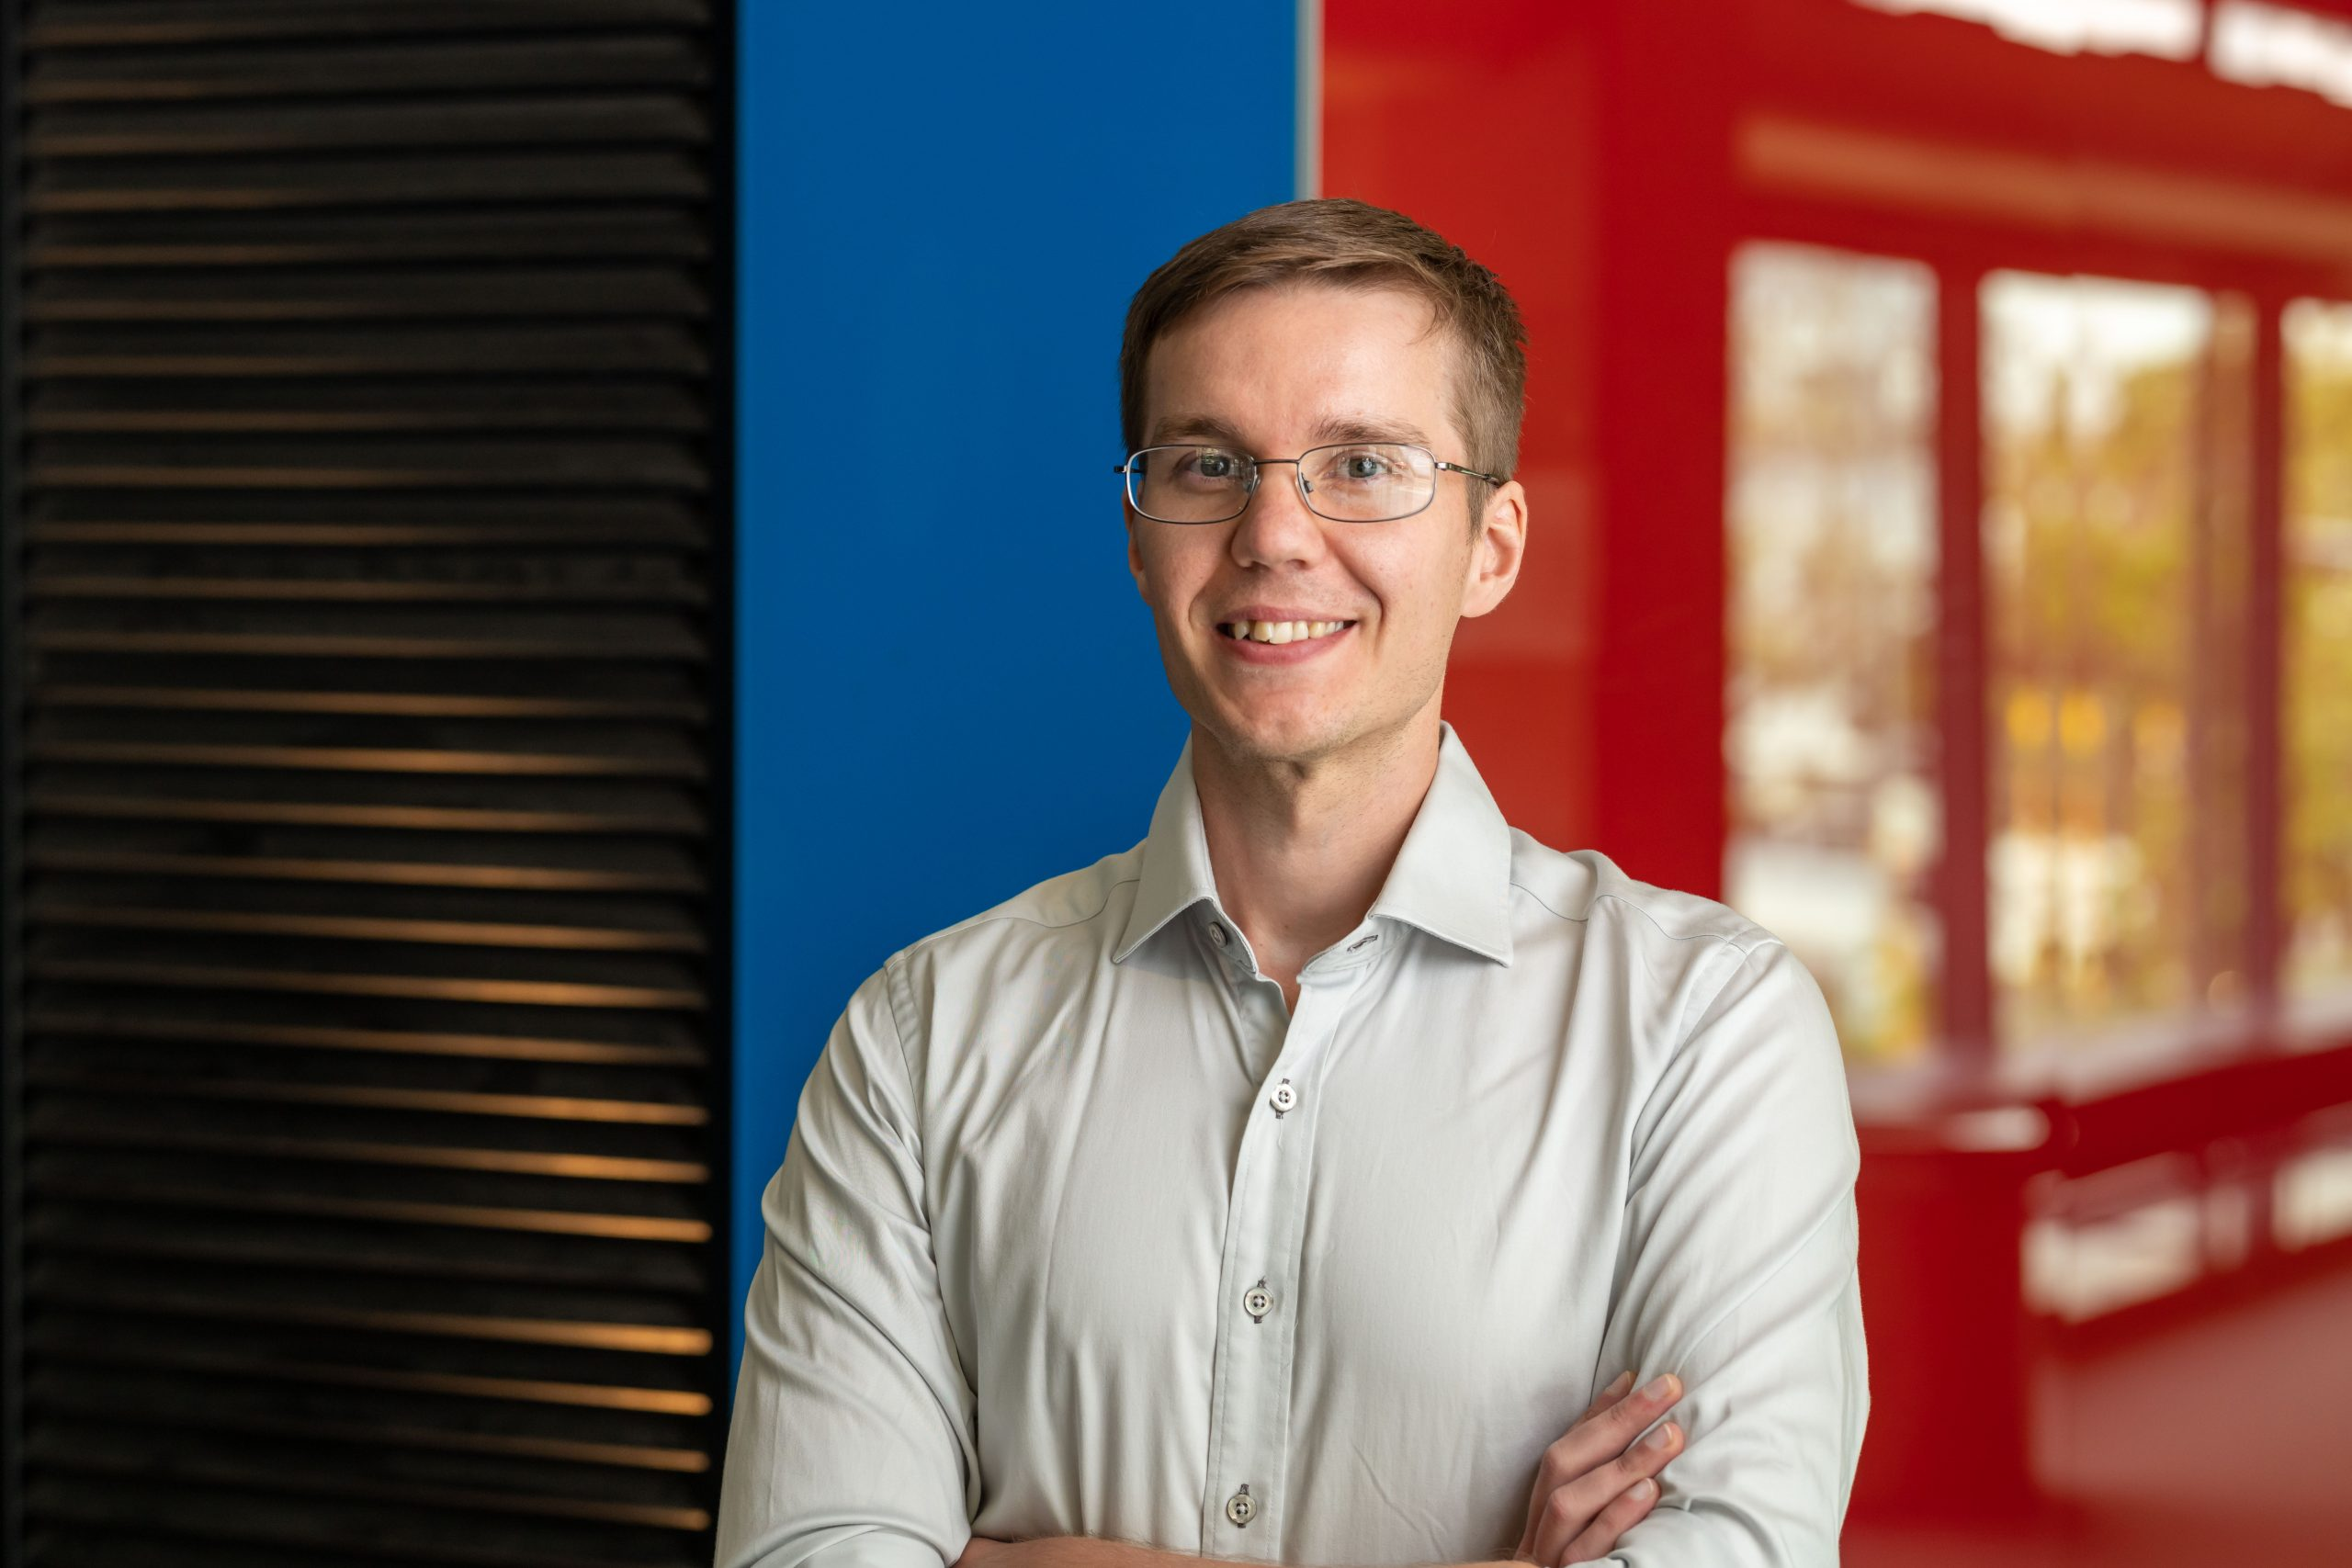 Image: World-leading laser physicist wins Prime Minister's MacDiarmid Emerging Scientist Prize 2019